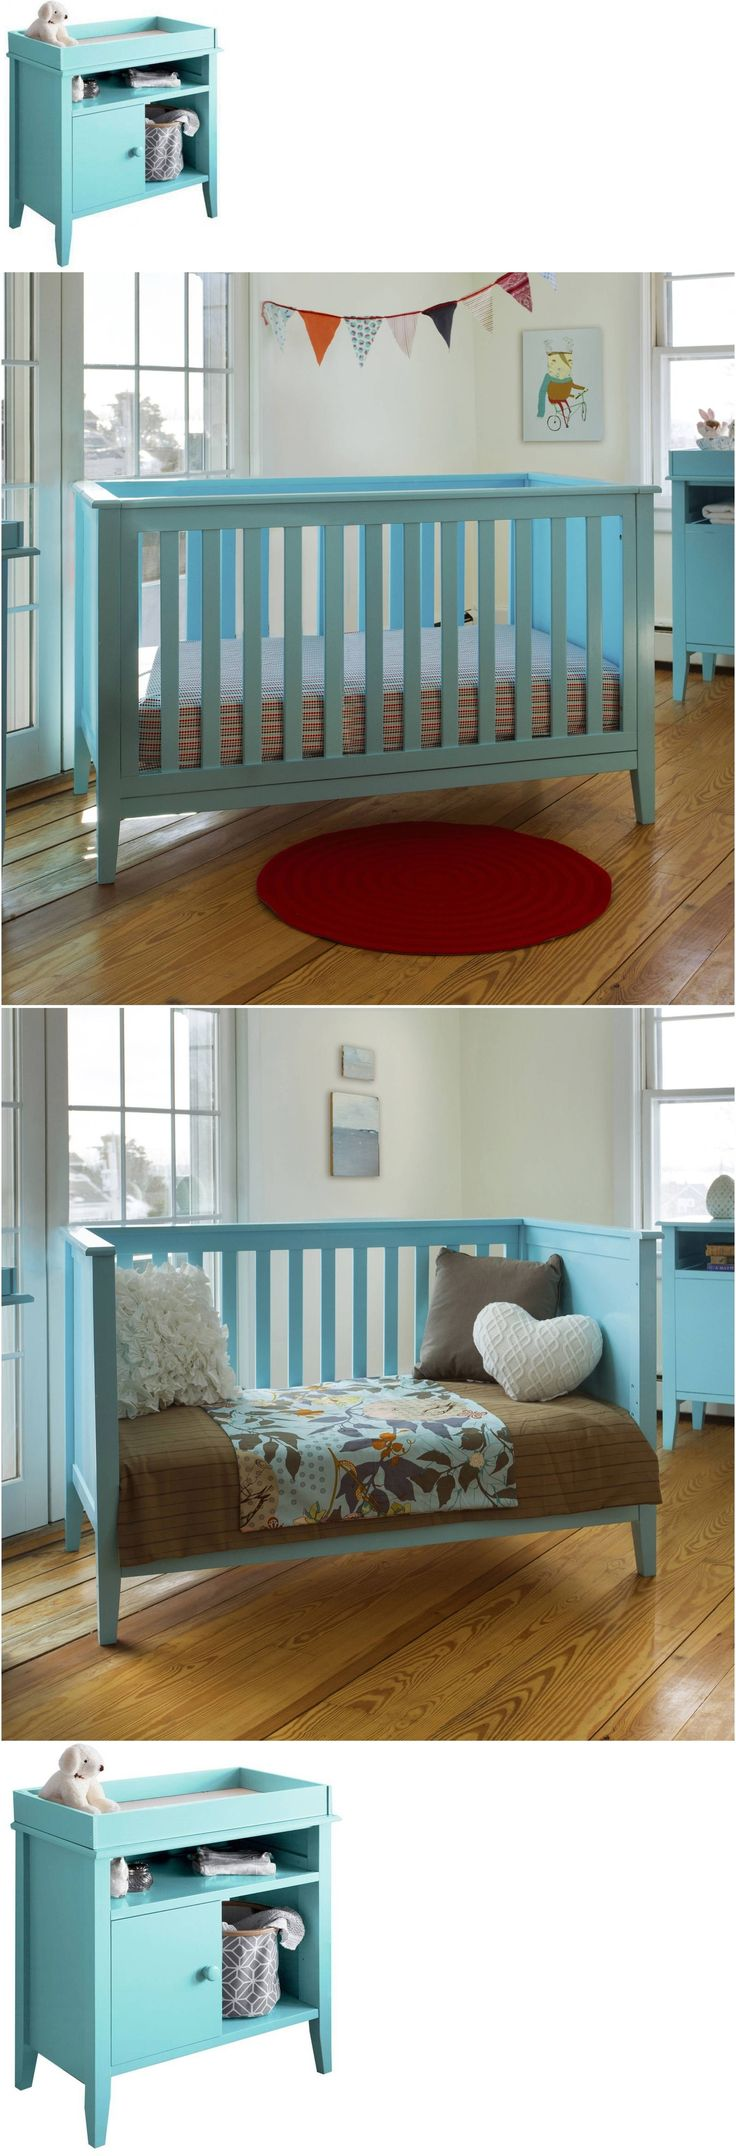 Changing Tables 20424: Baby Changing Table Infant Dresser Nursery Drawer Storage, Tiffany Blue -> BUY IT NOW ONLY: $185.98 on eBay!